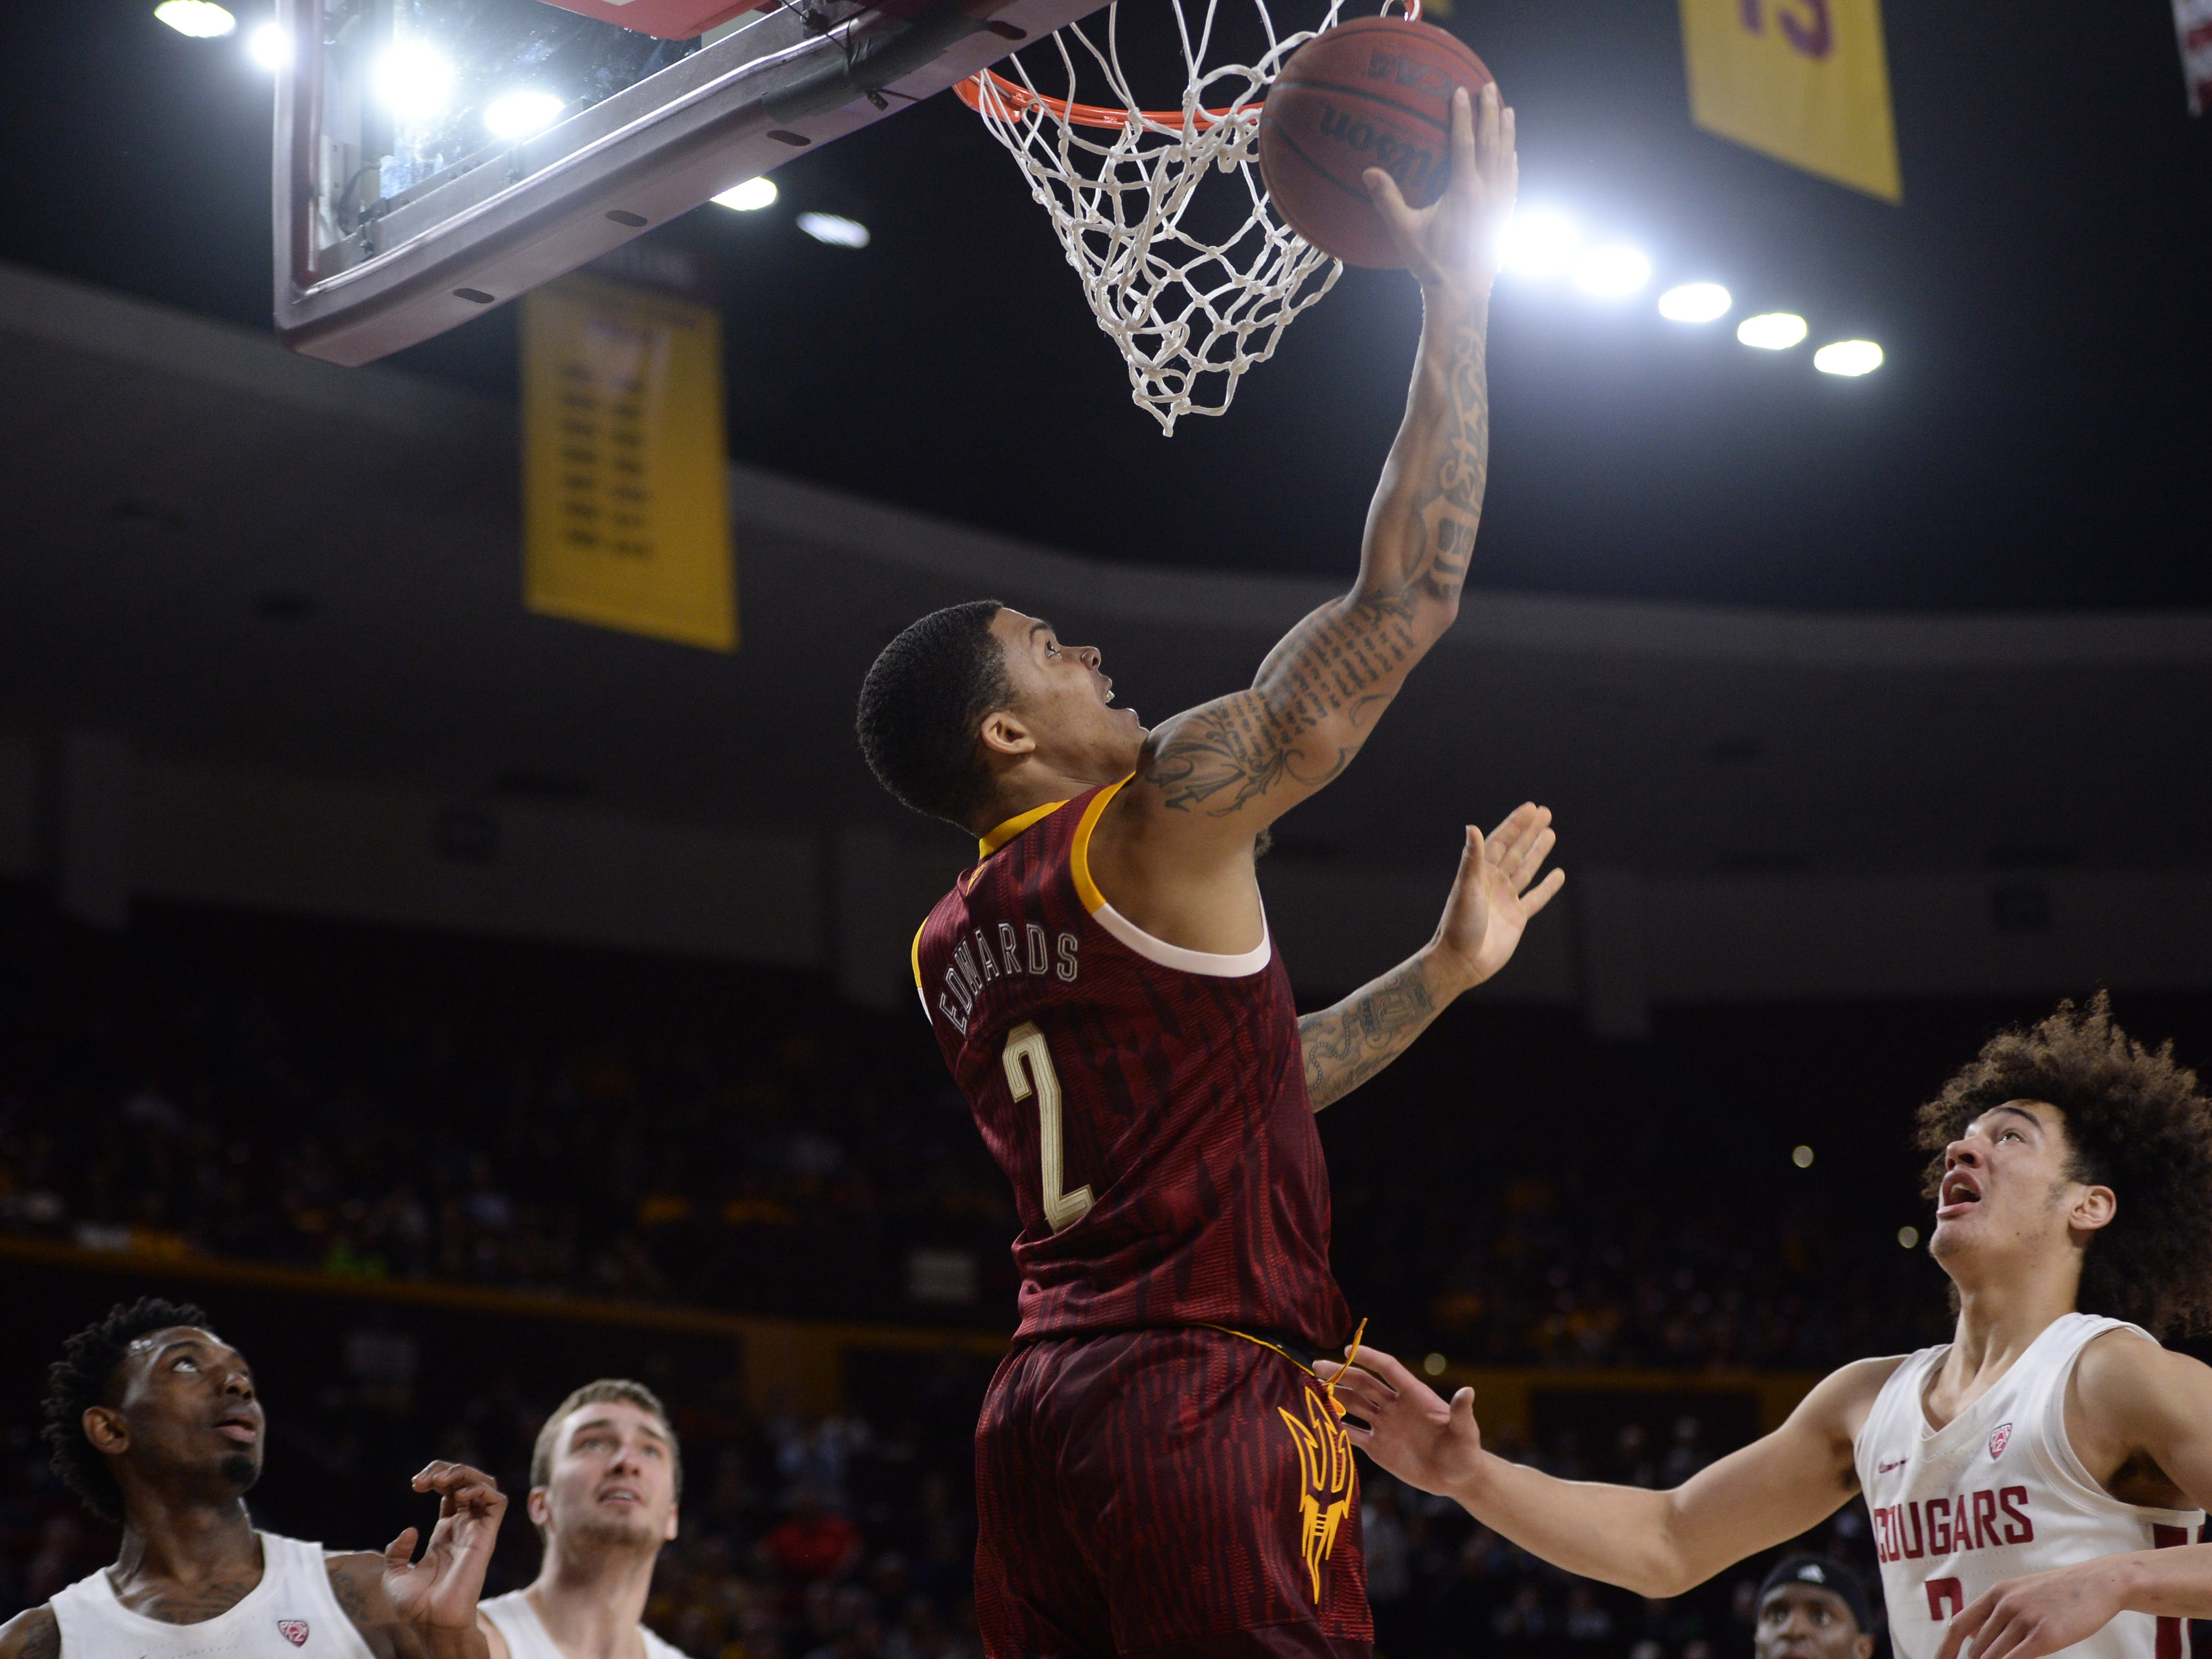 Feb 7, 2019; Tempe, AZ, USA; Arizona State Sun Devils guard Rob Edwards (2) puts up a layup against the Washington State Cougars during the second half at Wells Fargo Arena (AZ).